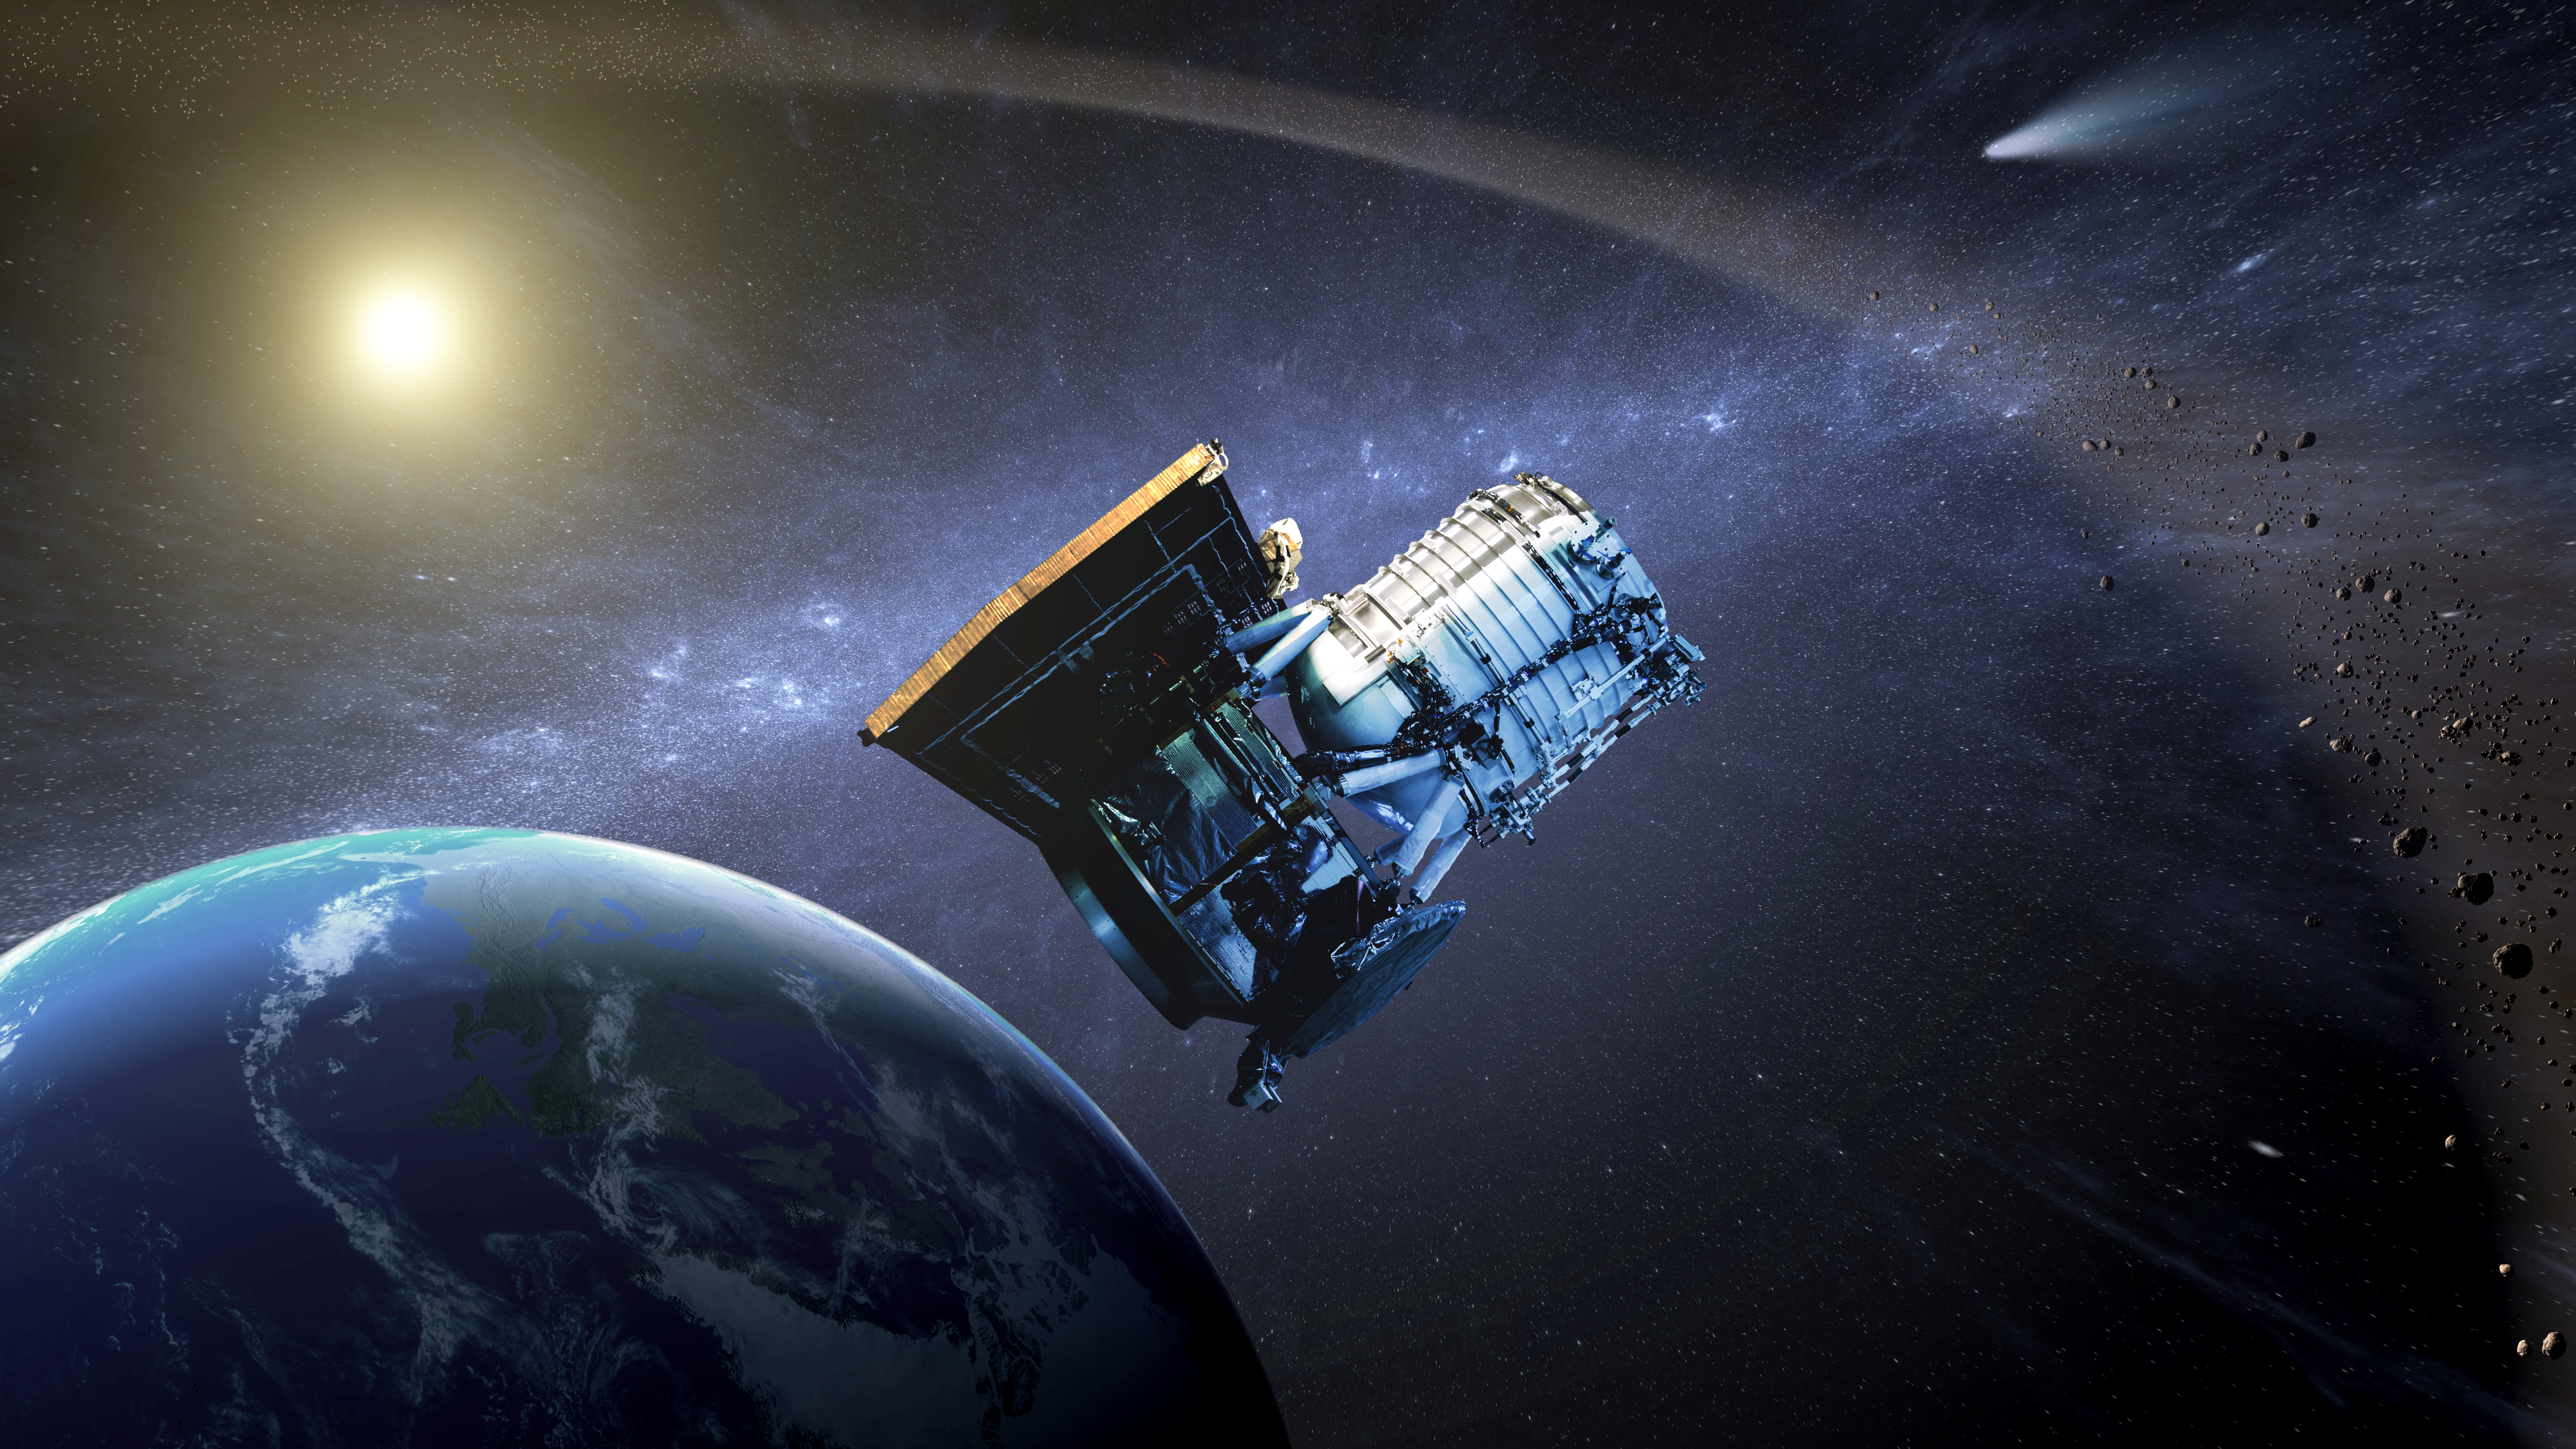 The NEOWISE spacecraft